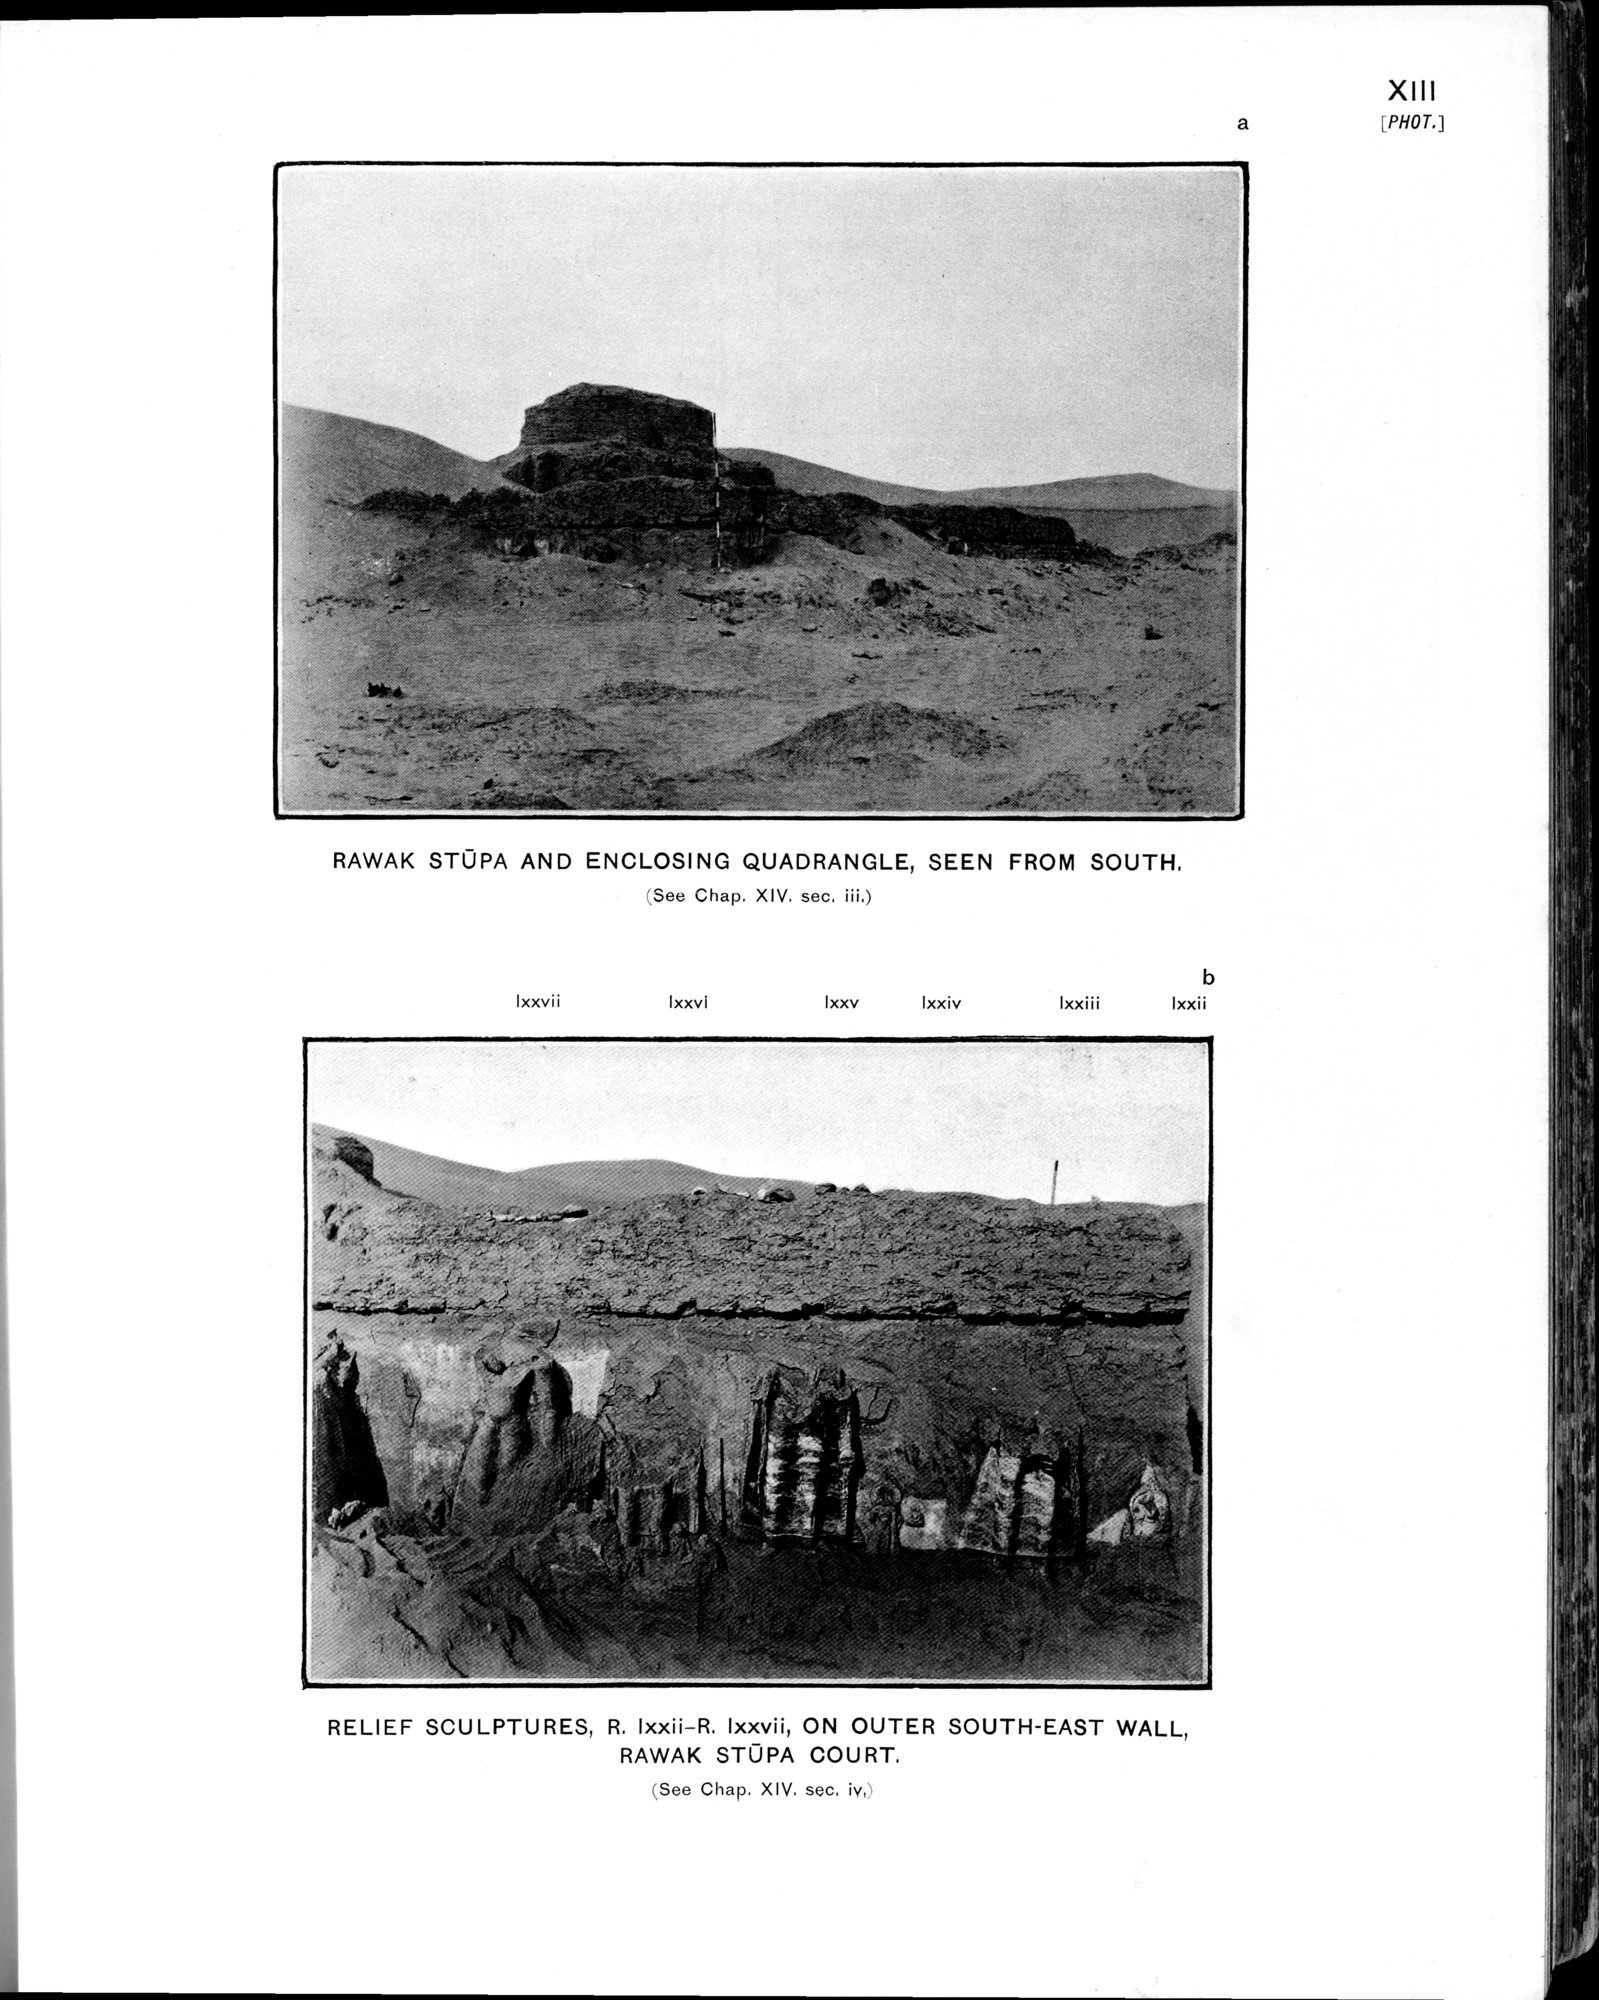 Ancient Khotan : vol.2 / Page 37 (Grayscale High Resolution Image)